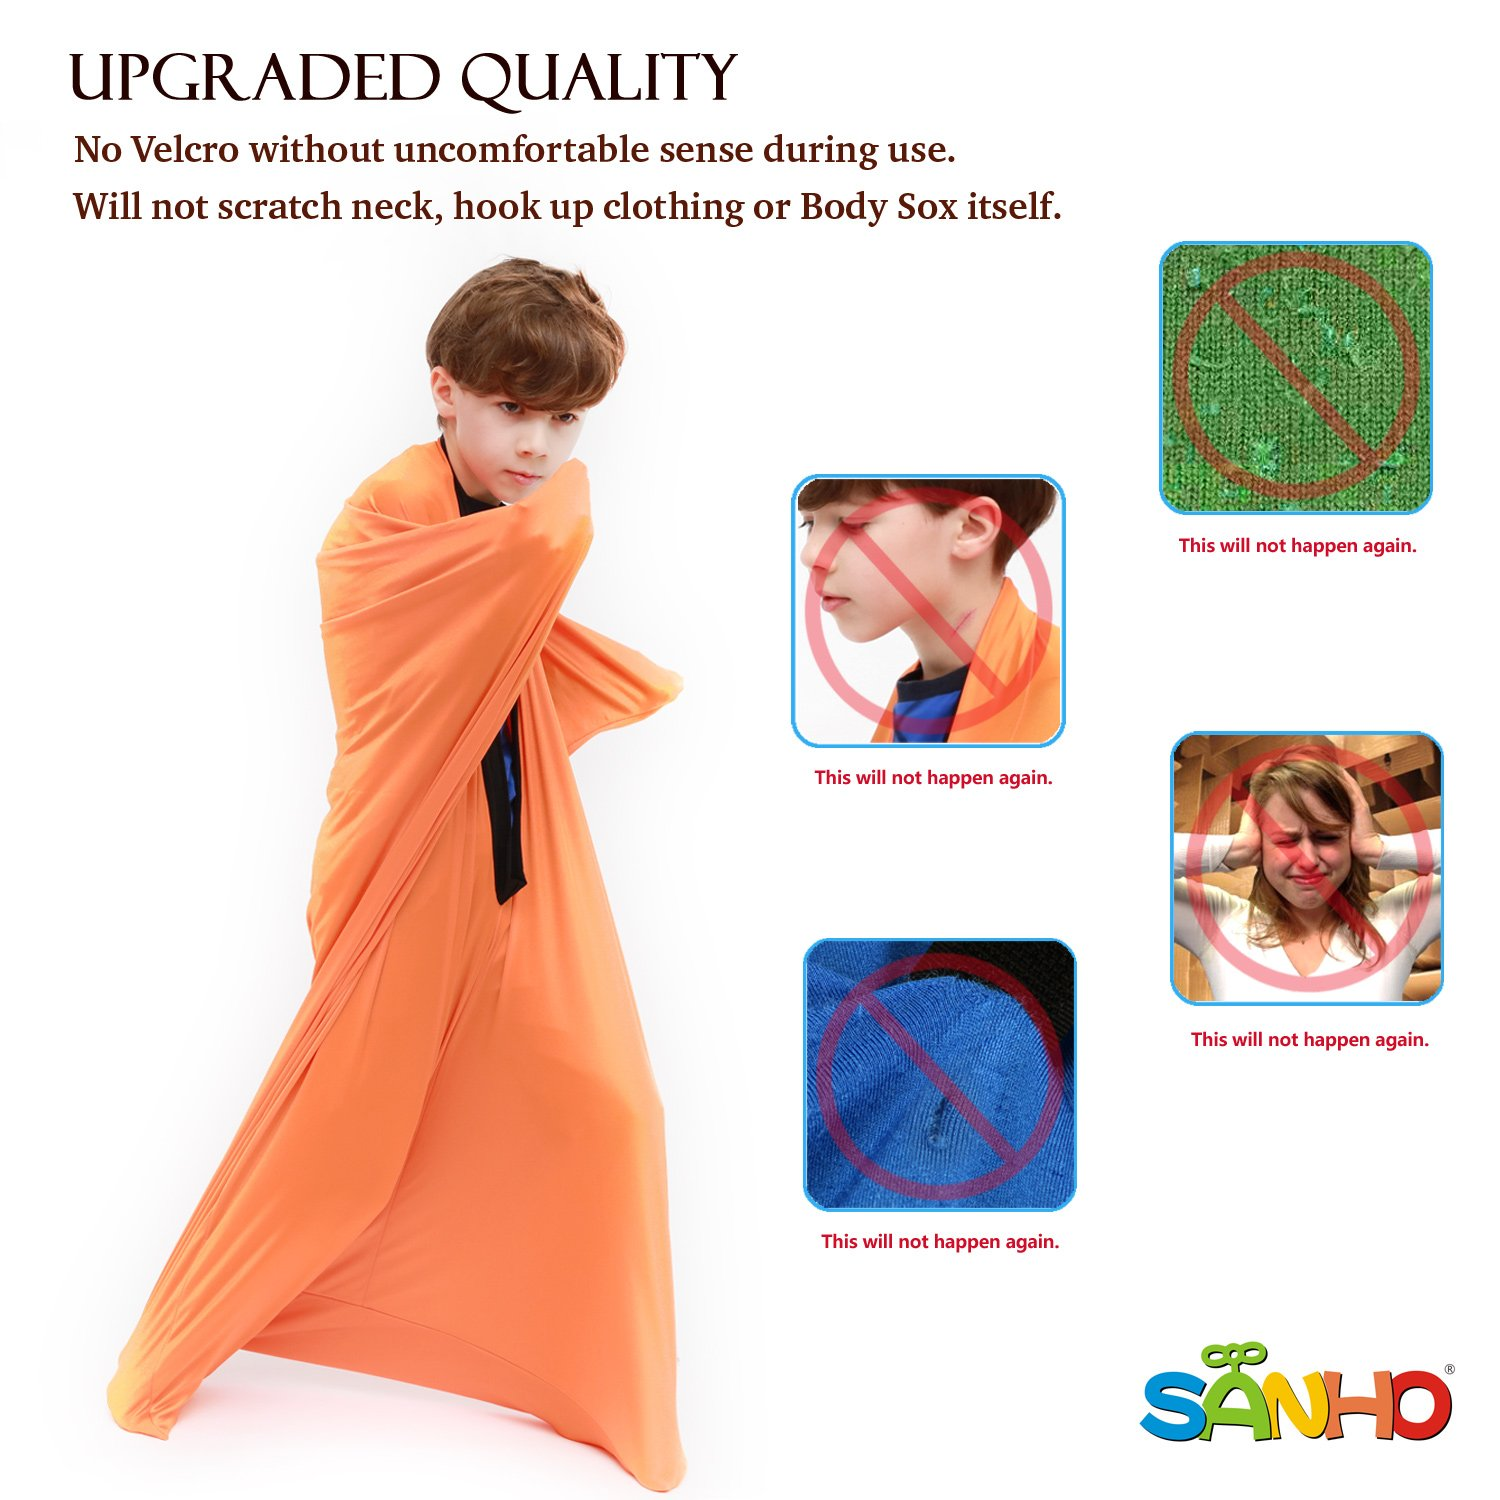 Sanho Yopo Dynamic Movement Sensory Sox, Medium,6-9 years old, 47''LX27''W Orange by Sanho Yopo (Image #3)